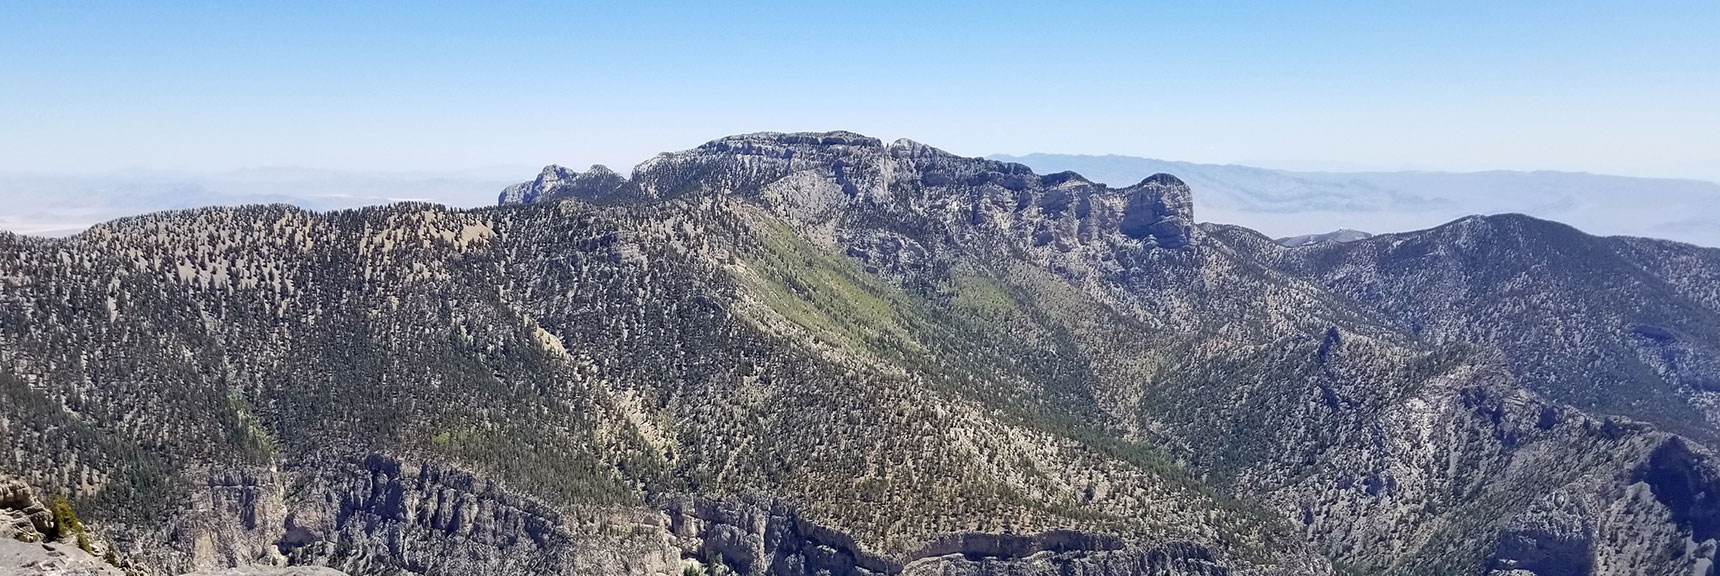 Mummy Mountain Viewed from Kyle Canyon Upper South Rim